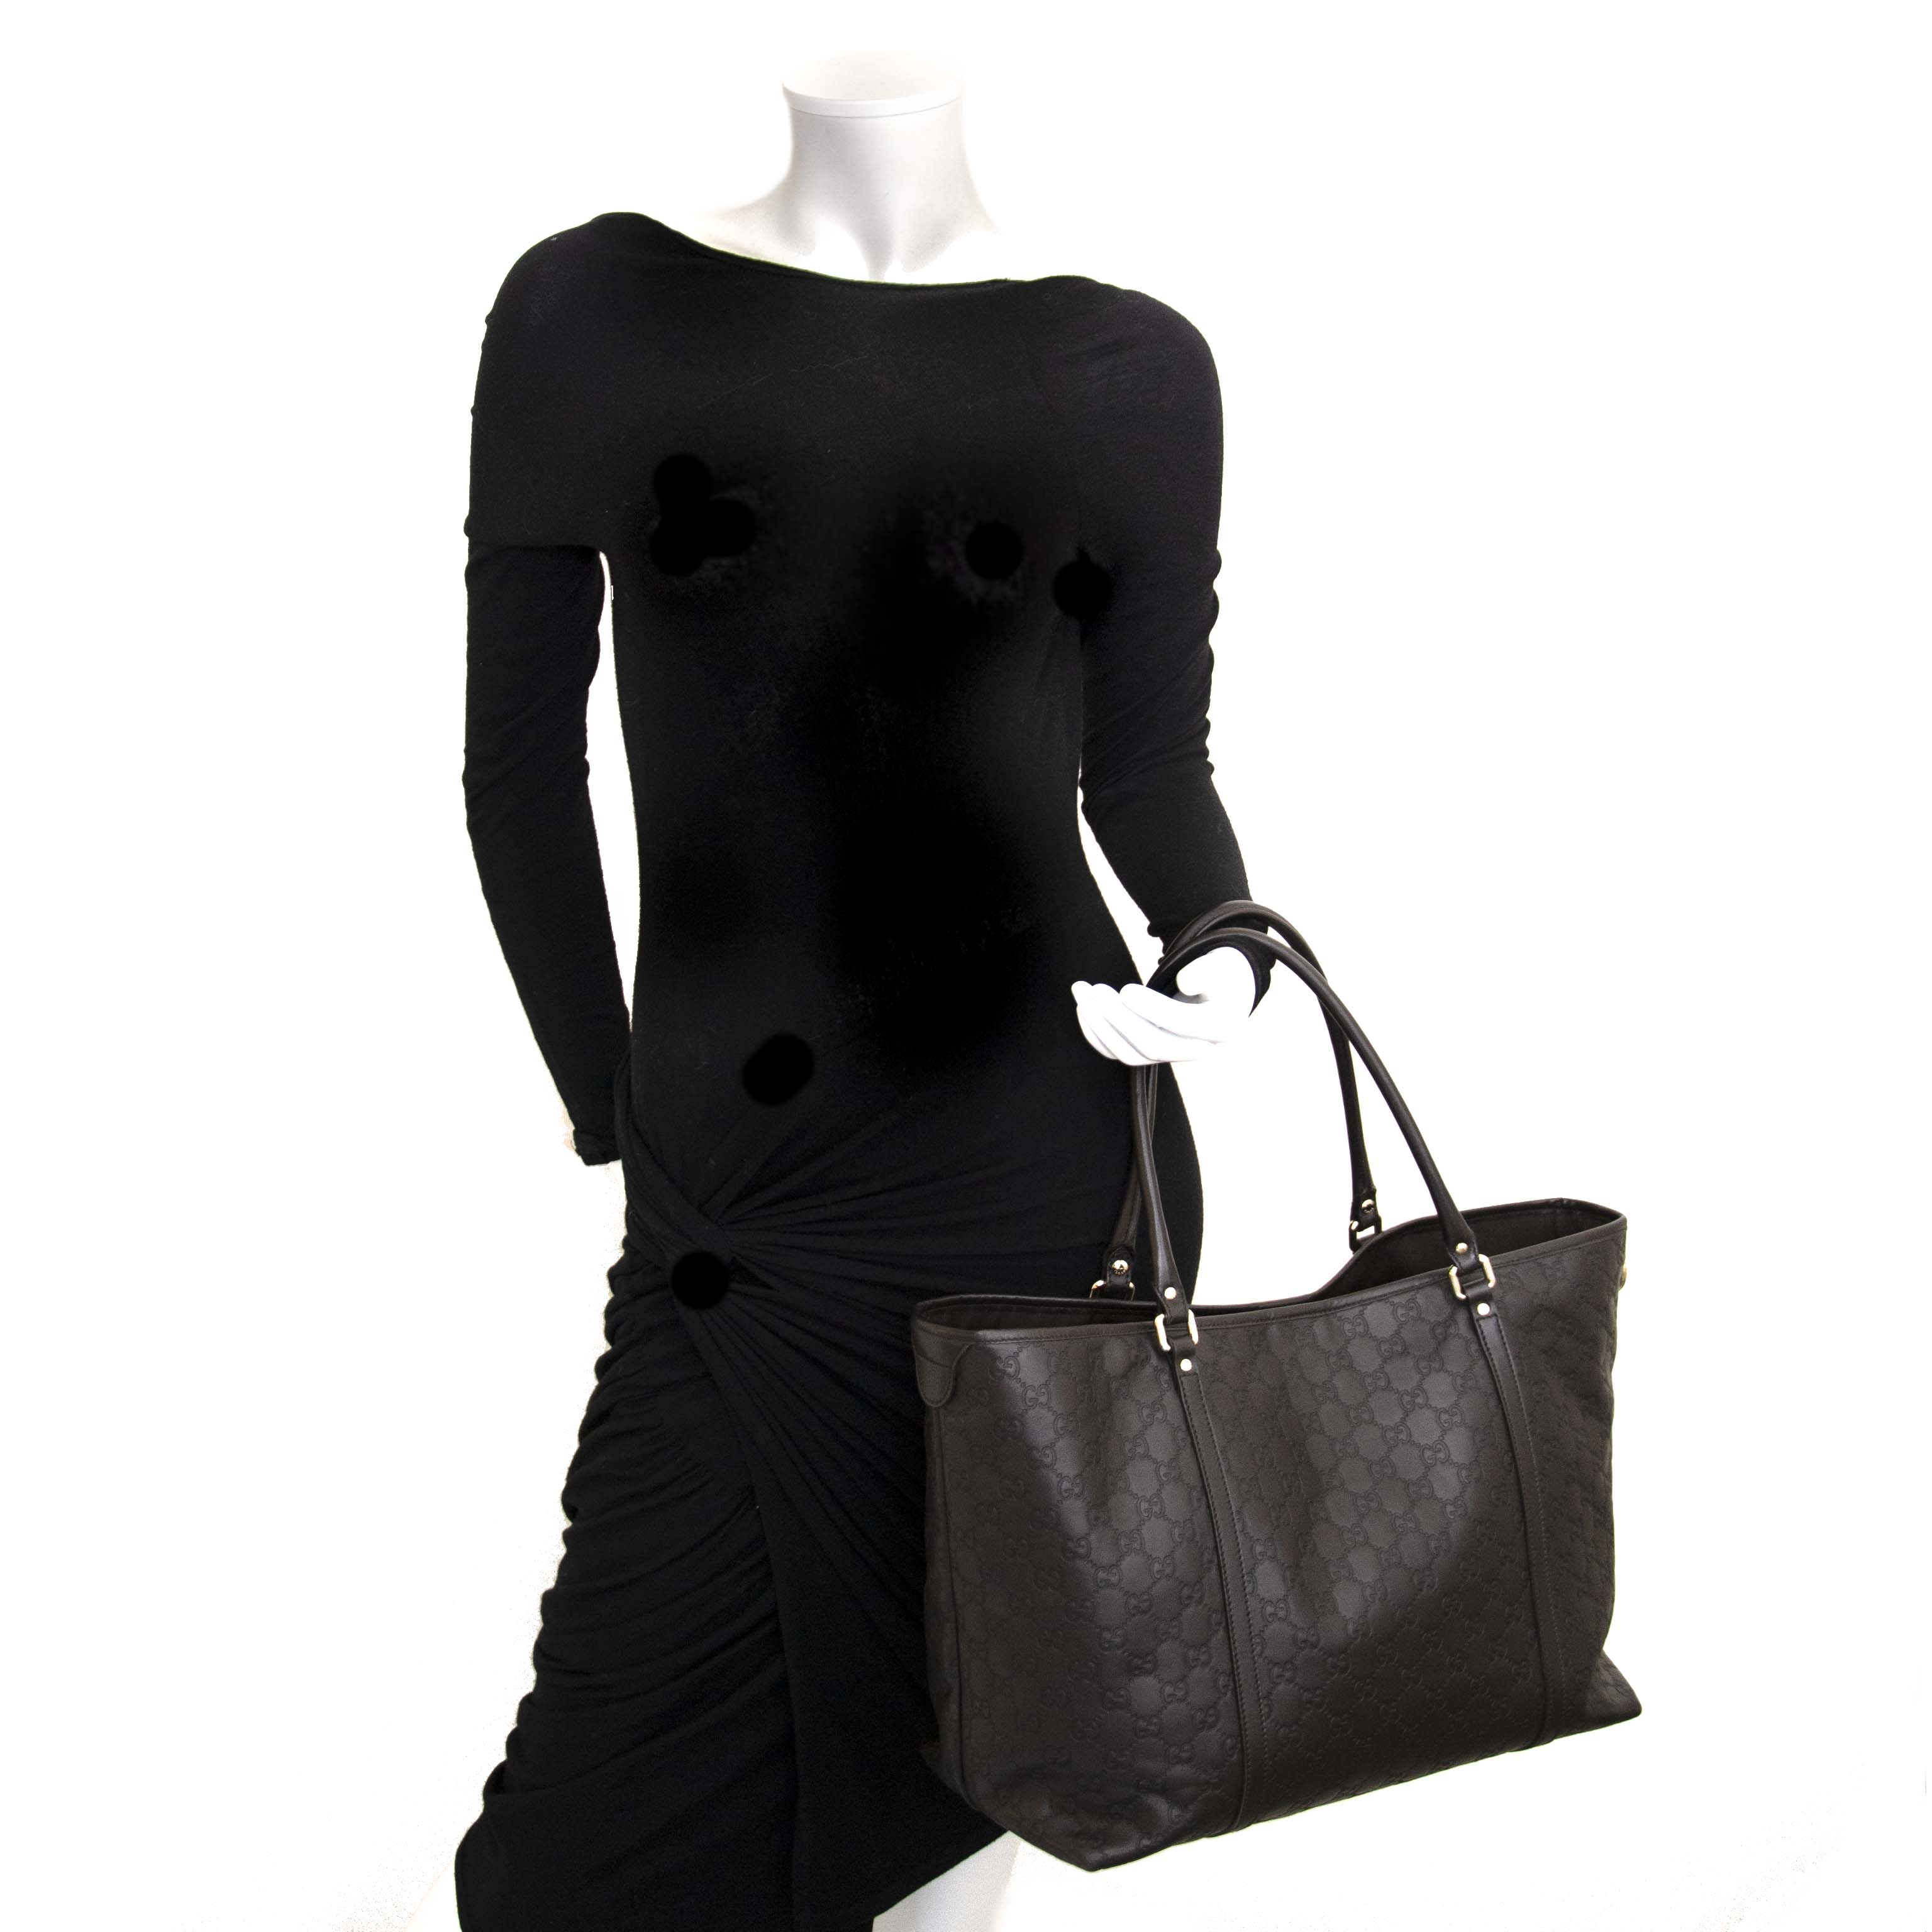 Vintage designers bags at Labellov at a fair price. Online shopping